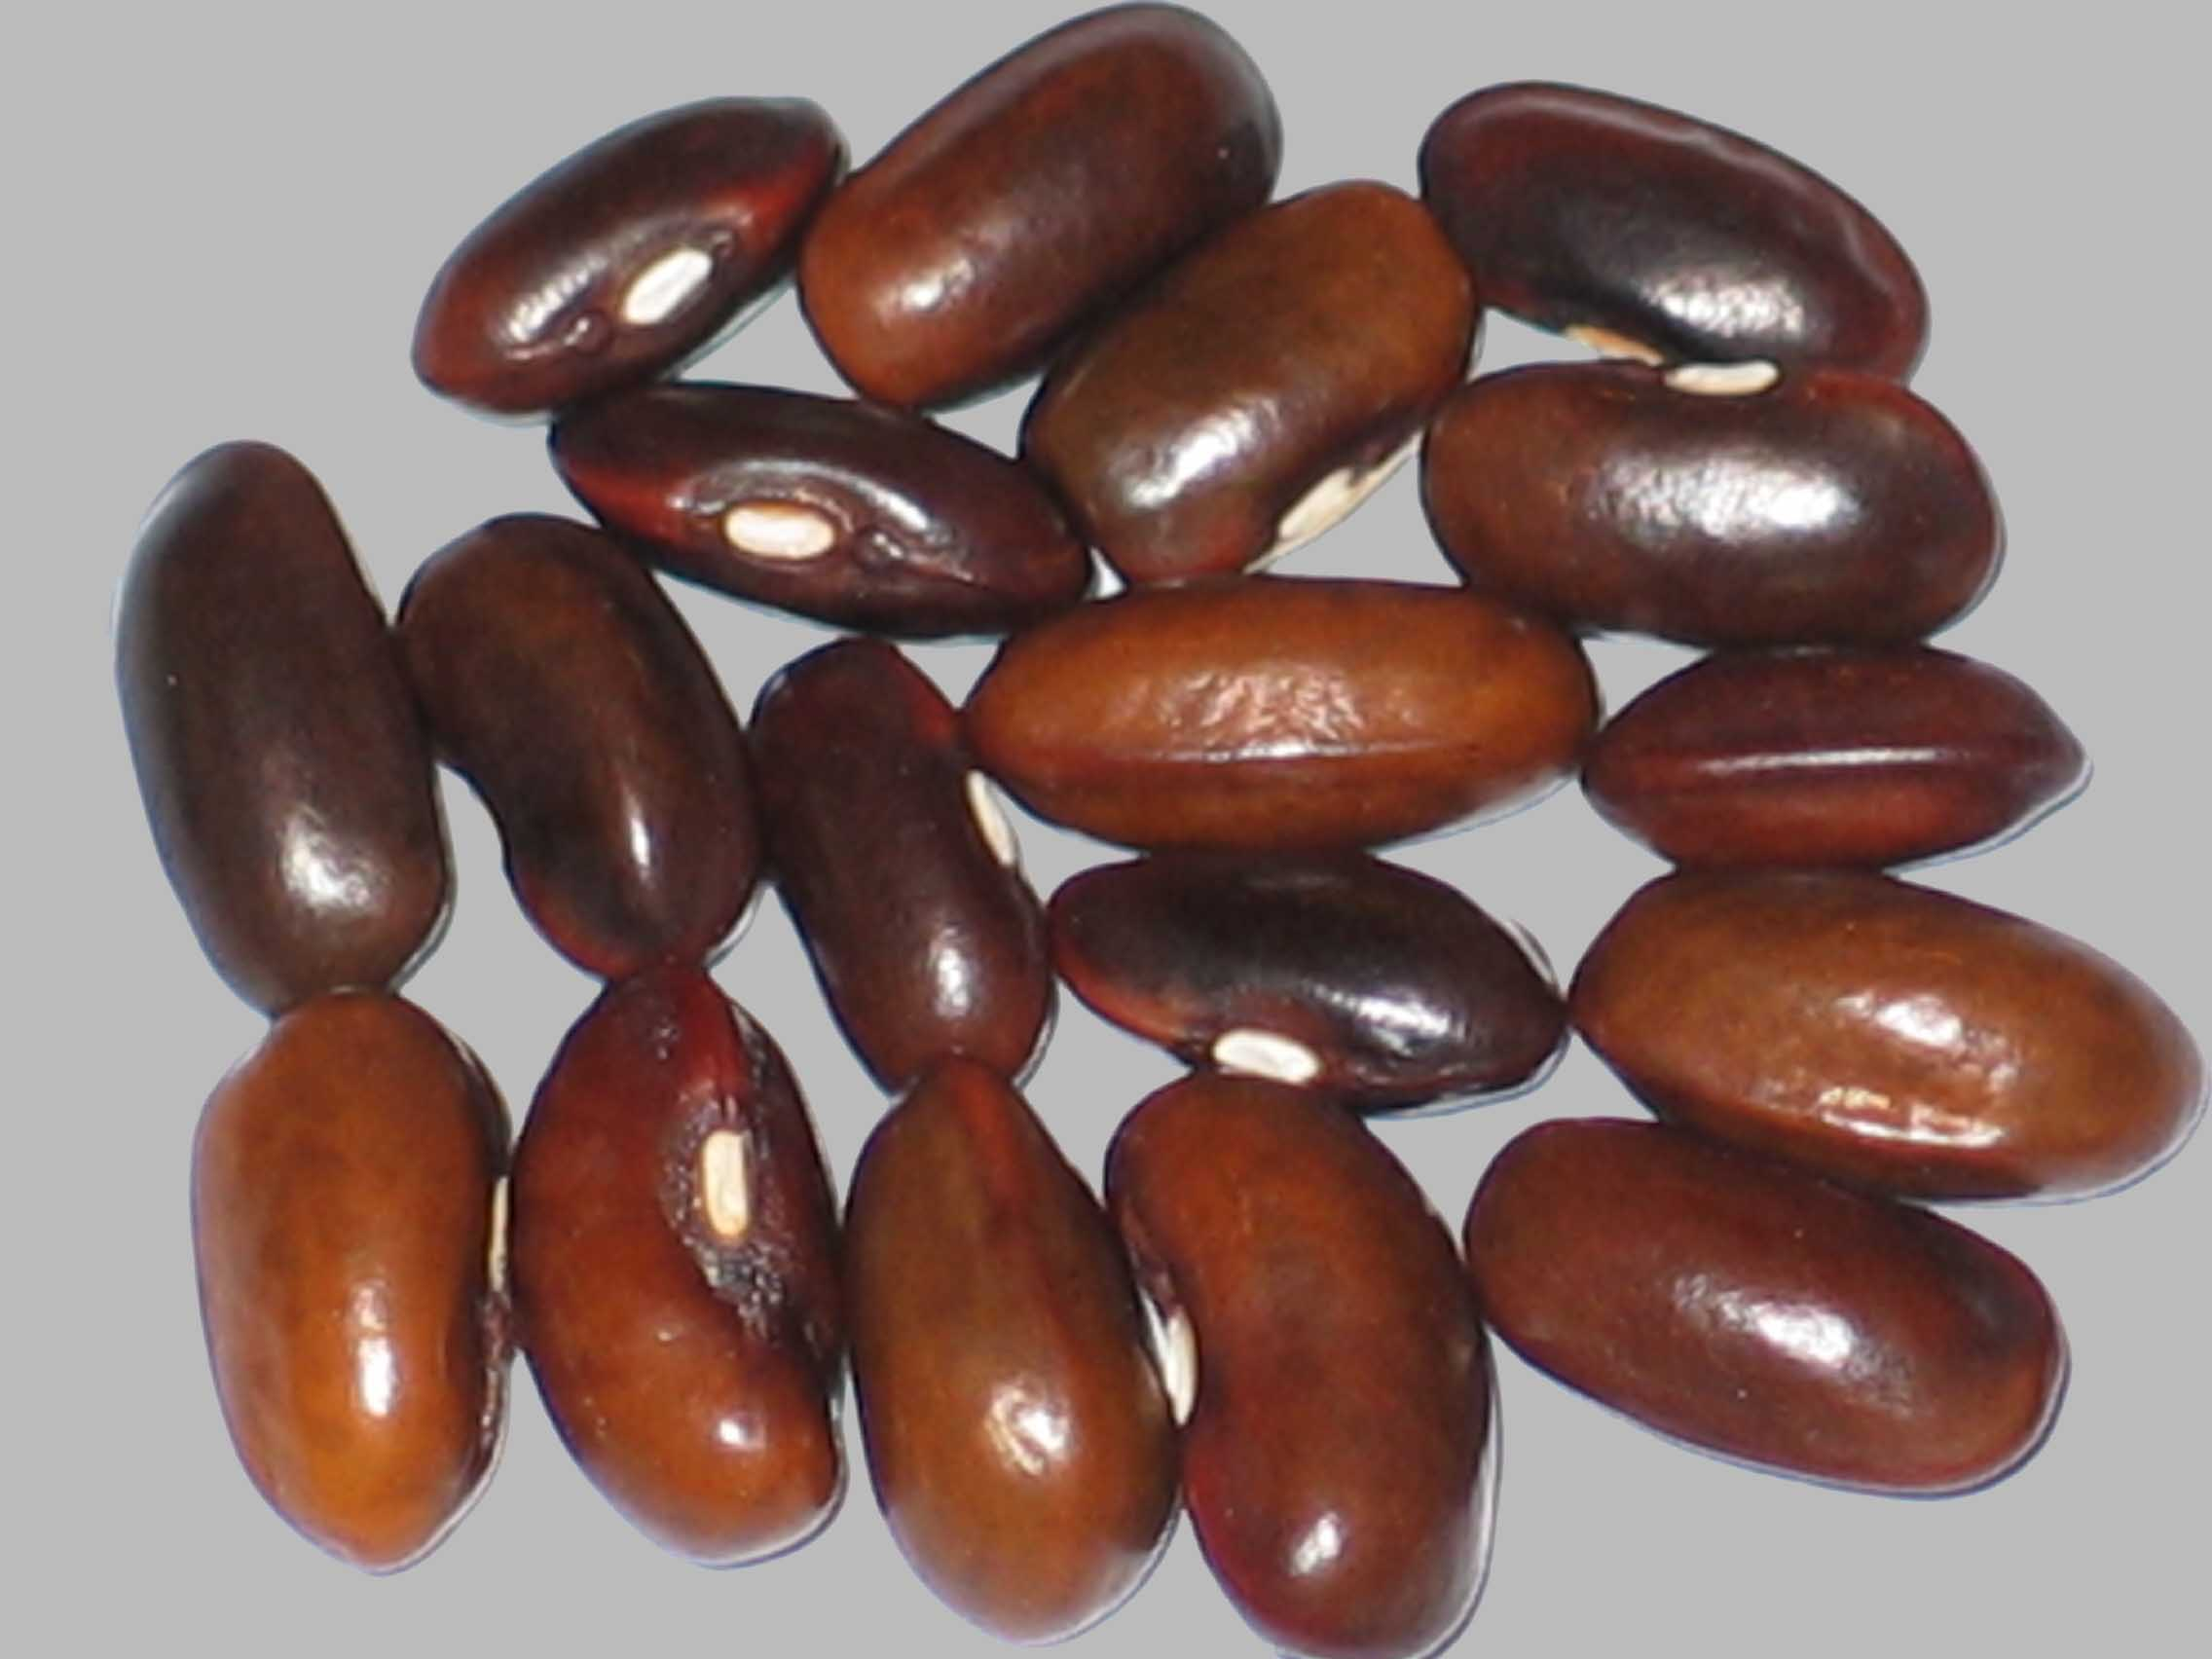 image of Idelight beans